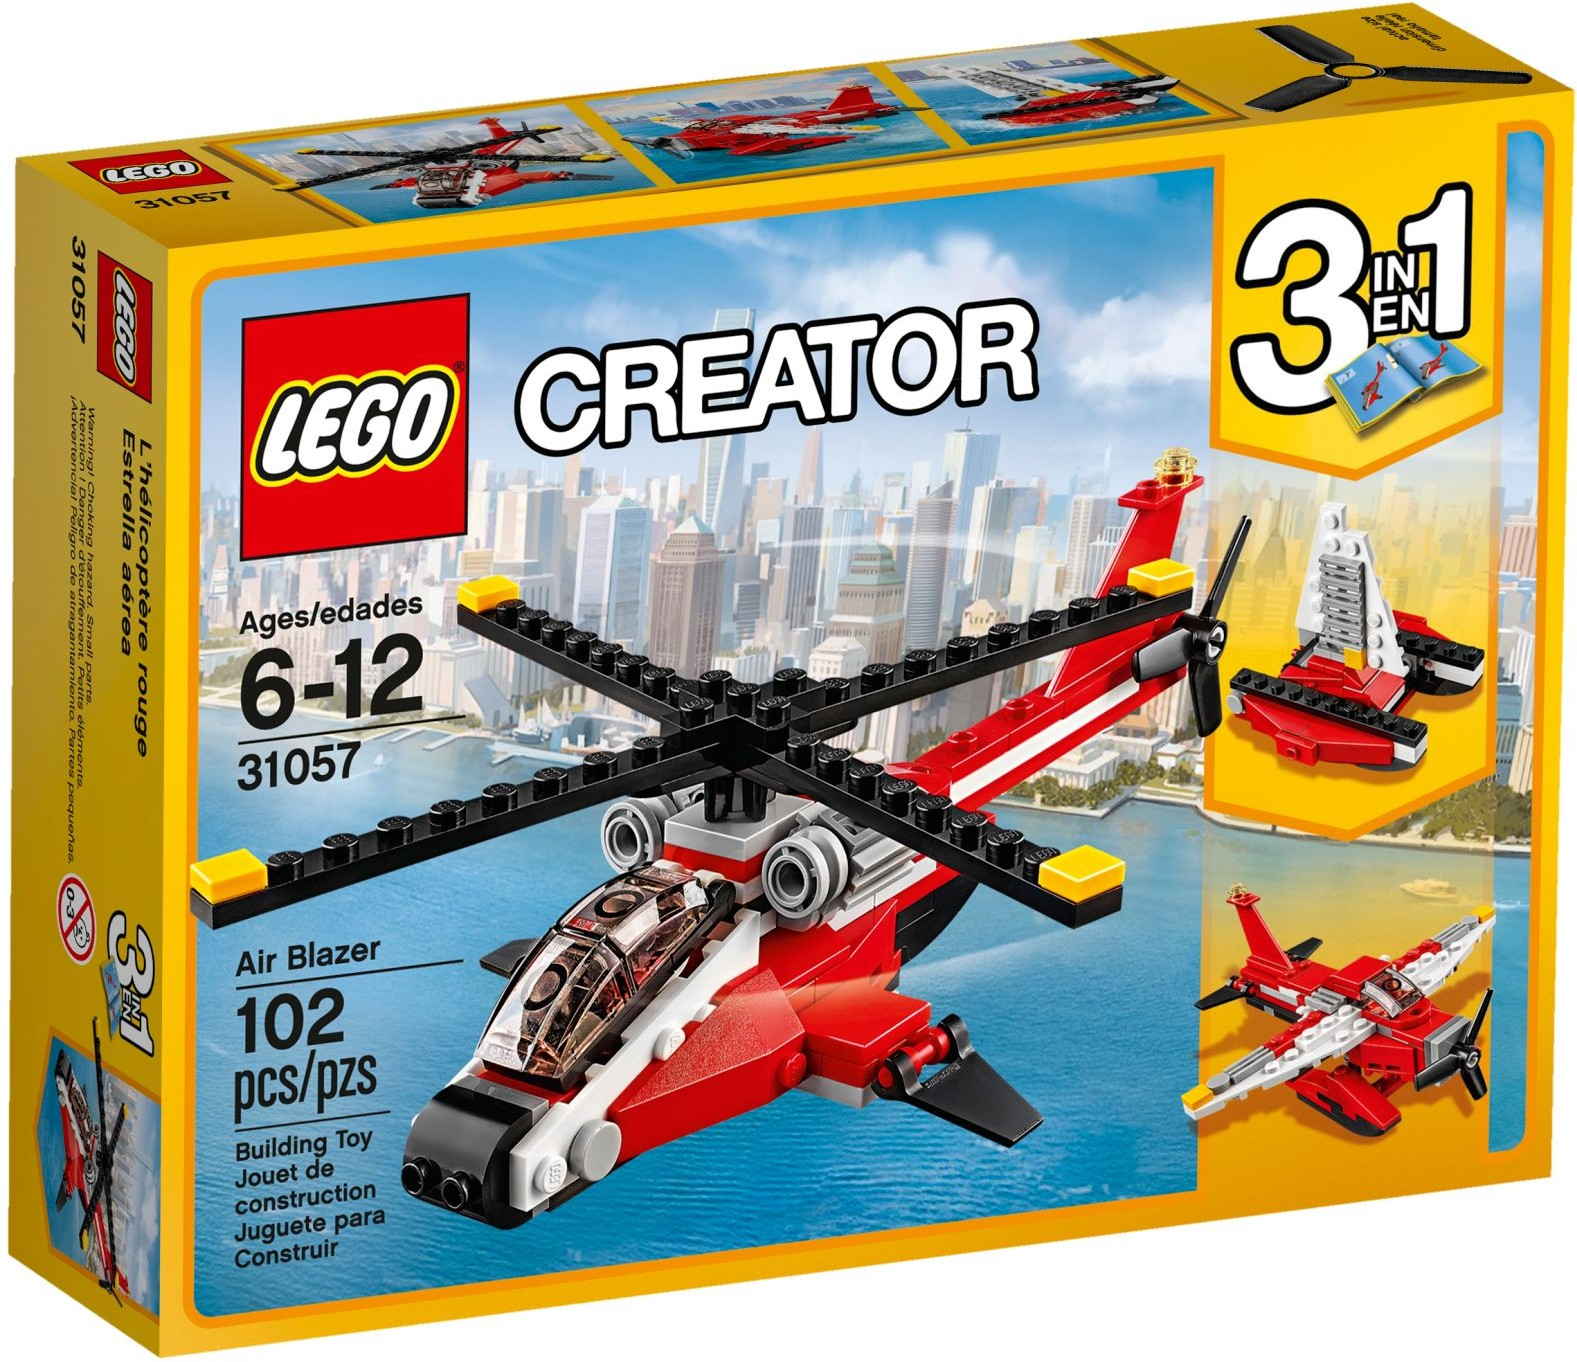 LEGO Creator Sets: 31057 Air Blazer NEW